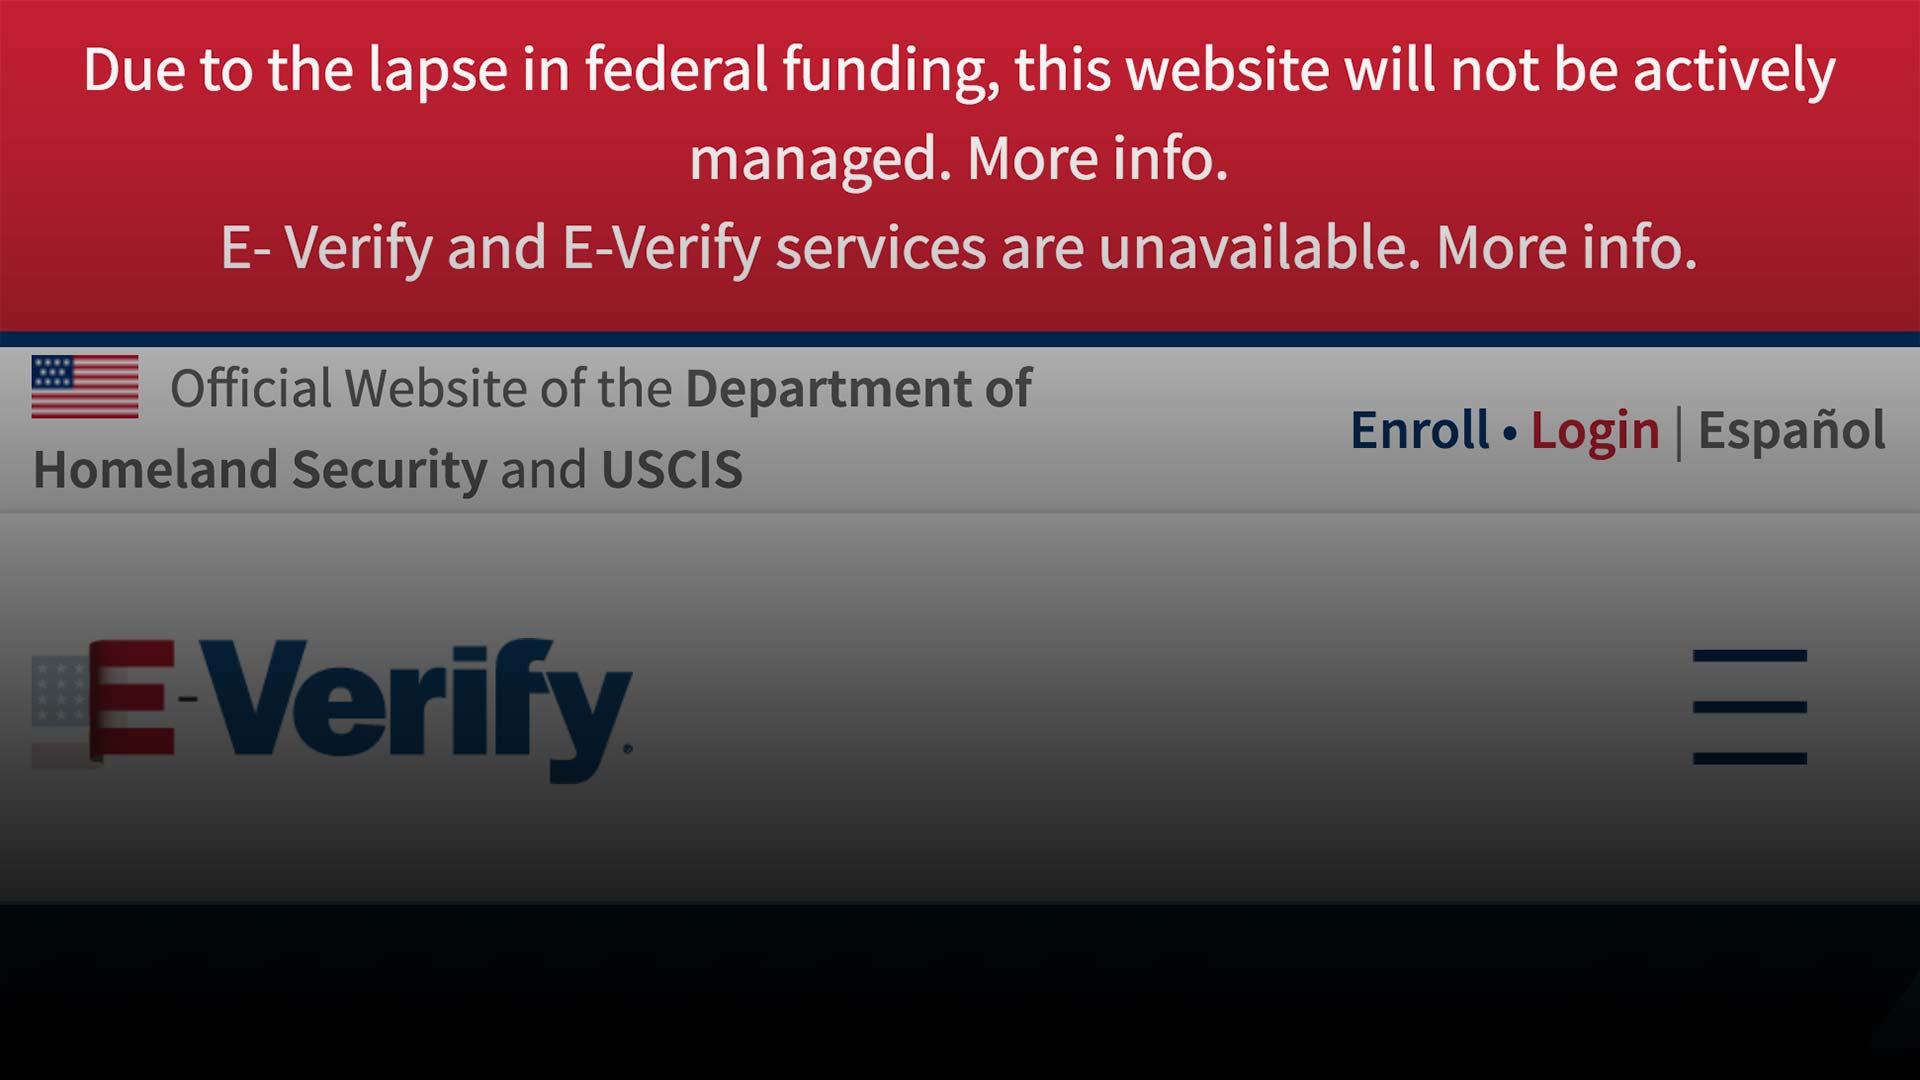 Services like E-Verify have been limited due to the partial government shutdown.